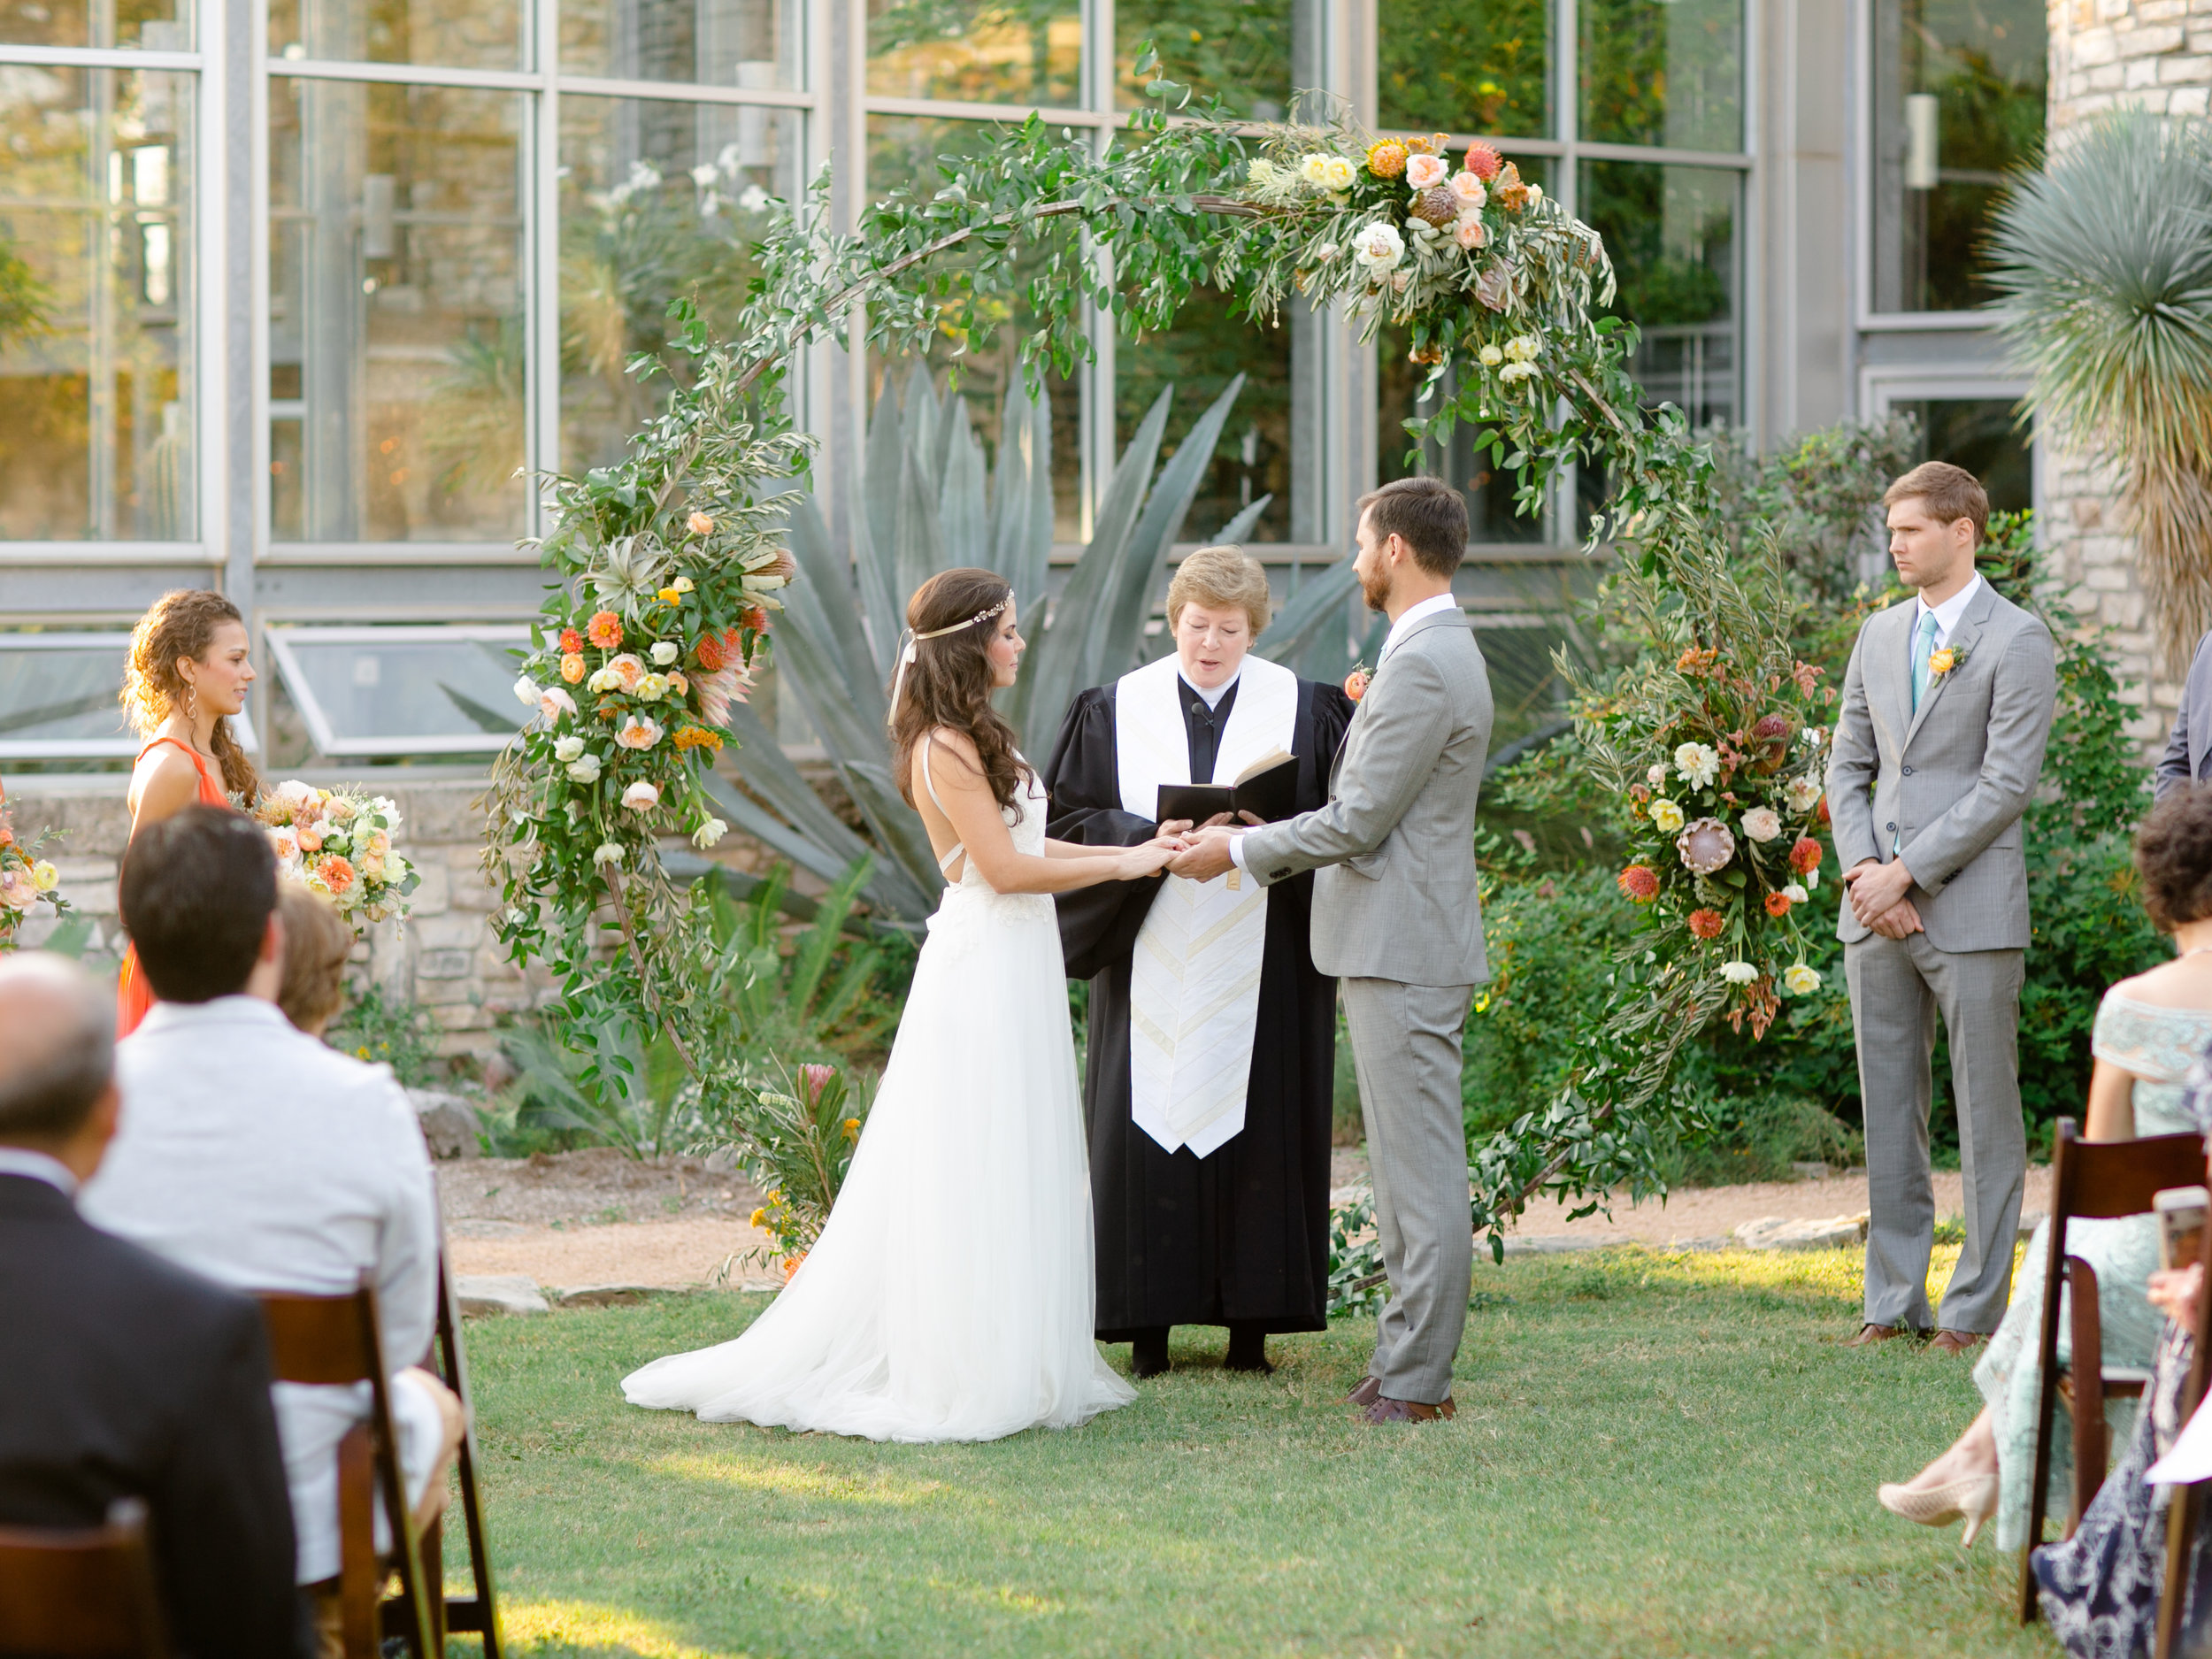 Best-Austin-Denver-California-Wedding-Photographer-Greenhouse-Driftwood25.jpg